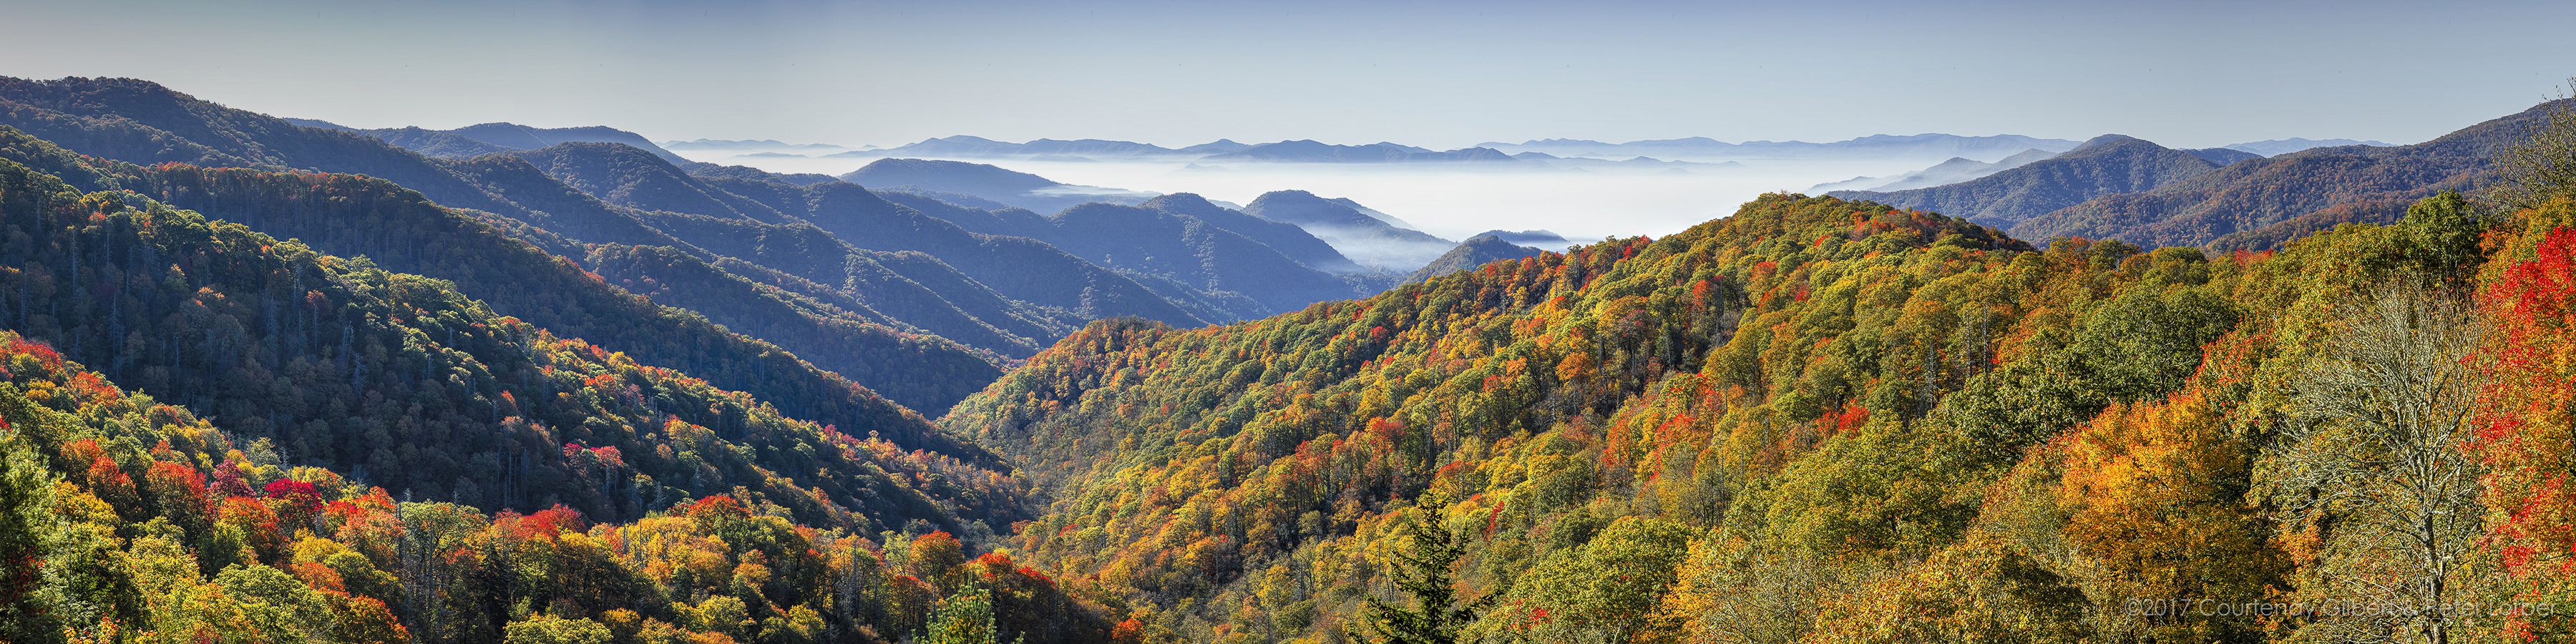 Smoky Mountain Vista